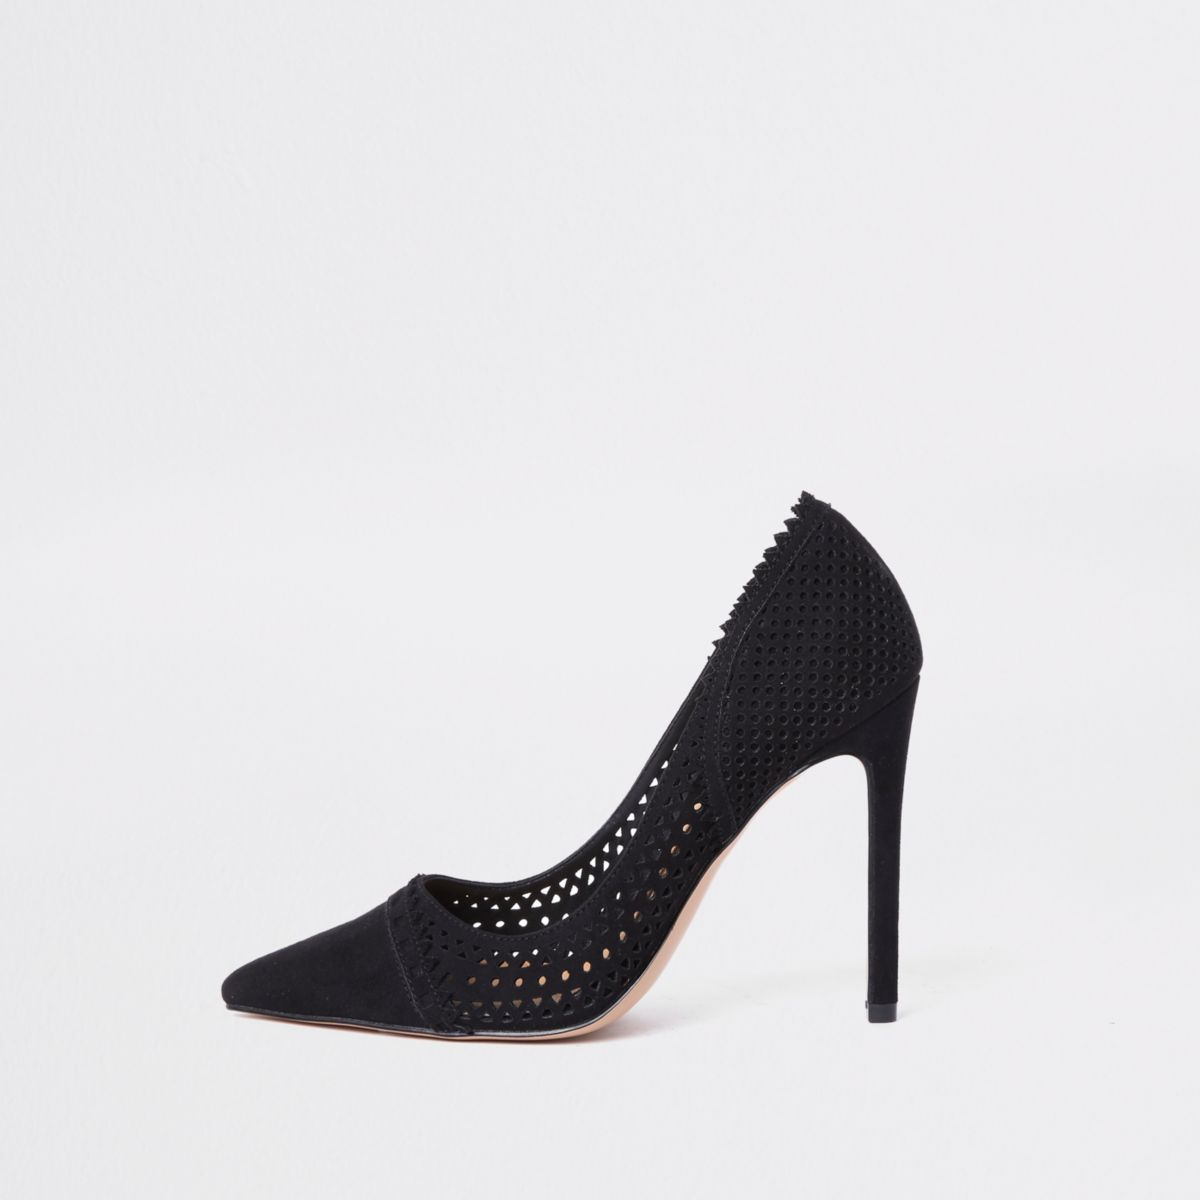 Black laser cut court shoes